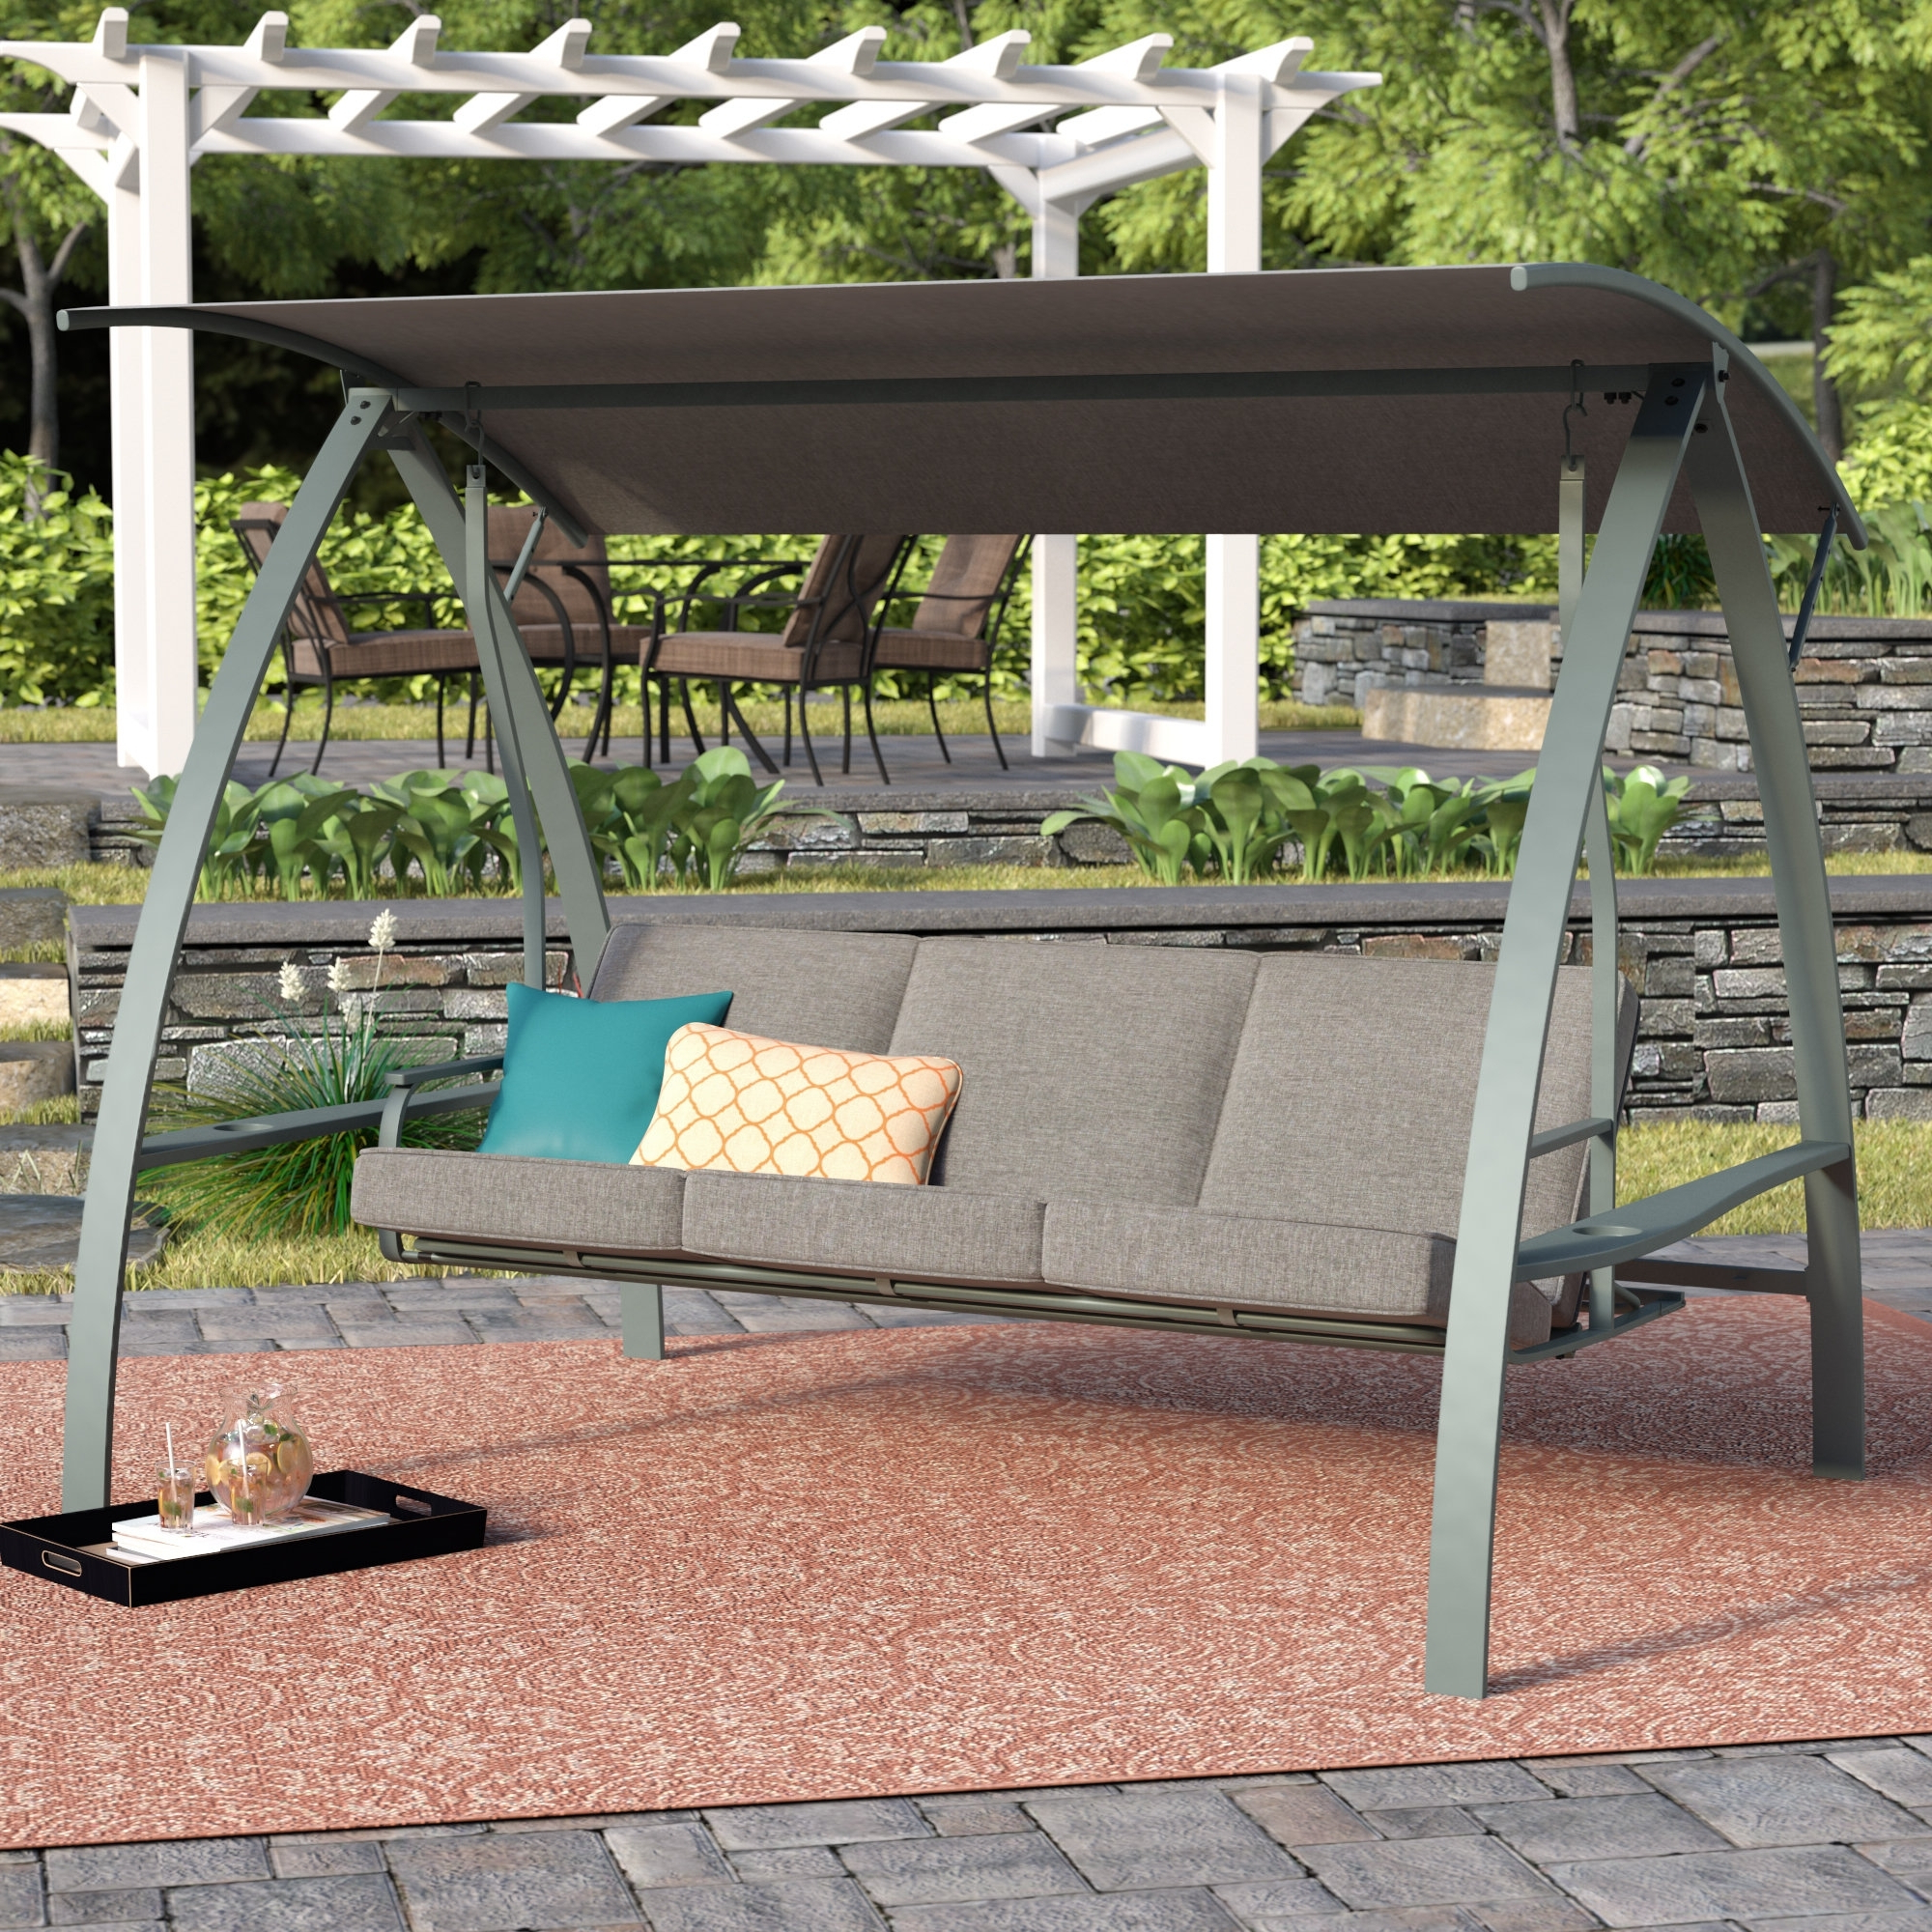 How To Build A Free Standing Frame For Porch Swing Intended For Newest Pergola Porch Swings With Stand (View 16 of 30)